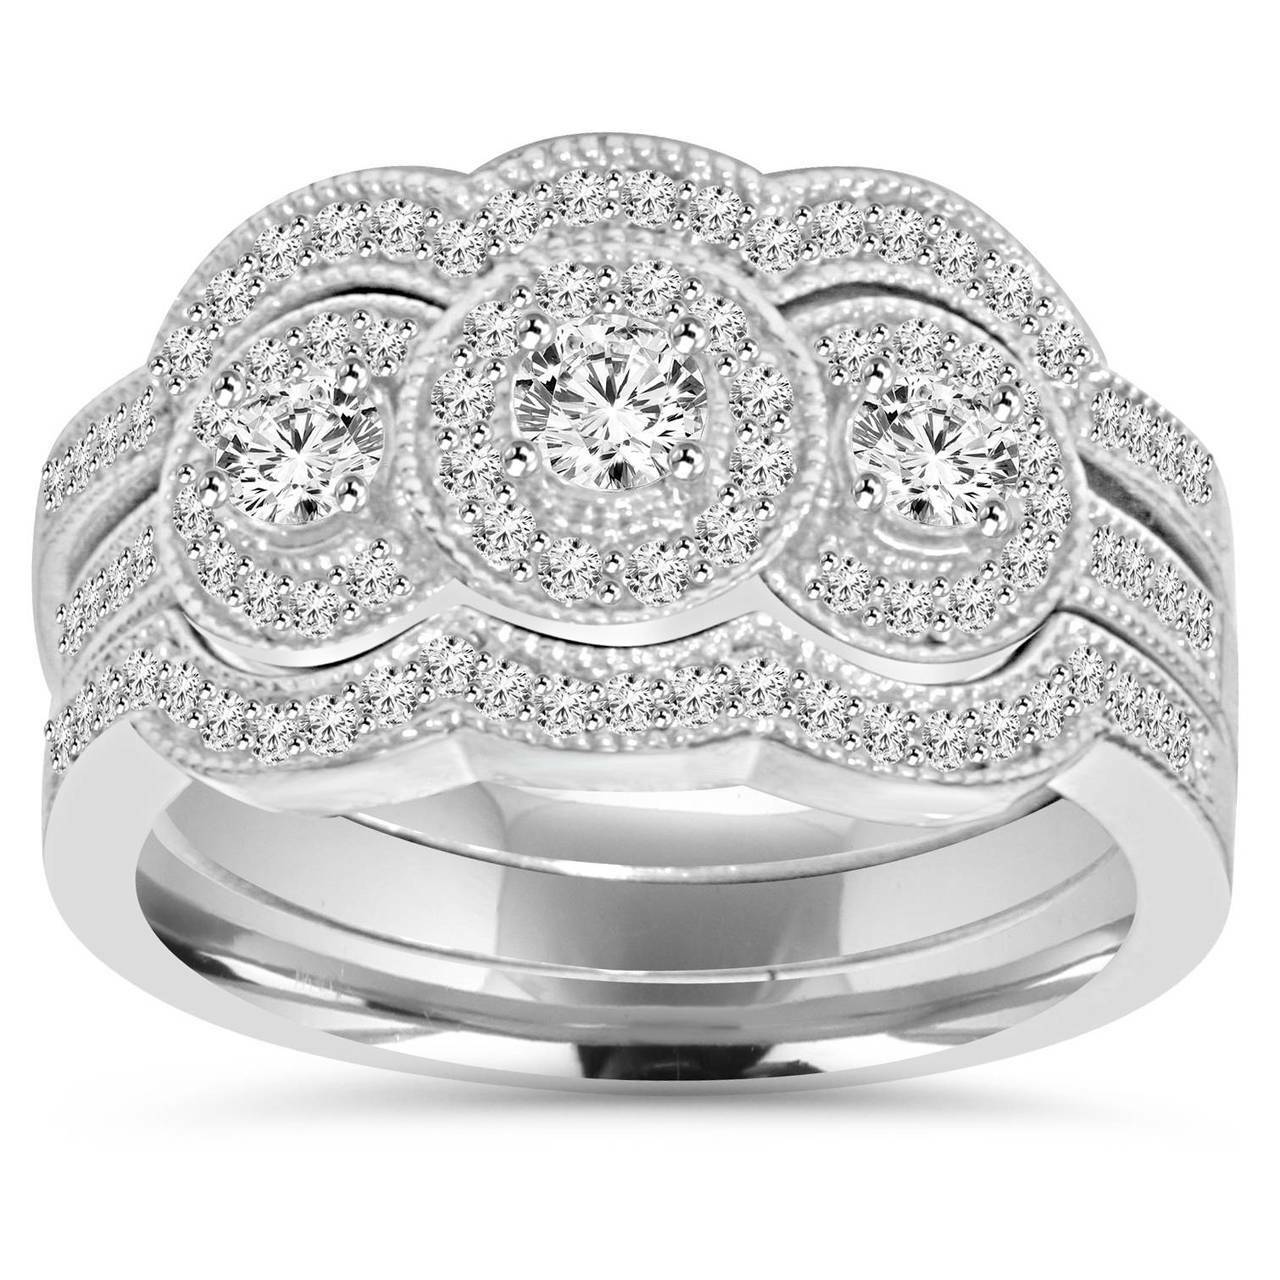 Trio Wedding Ring Sets | 1 25ct Trio Diamond Engagement Wedding Guard Ring Set 10k White Gold